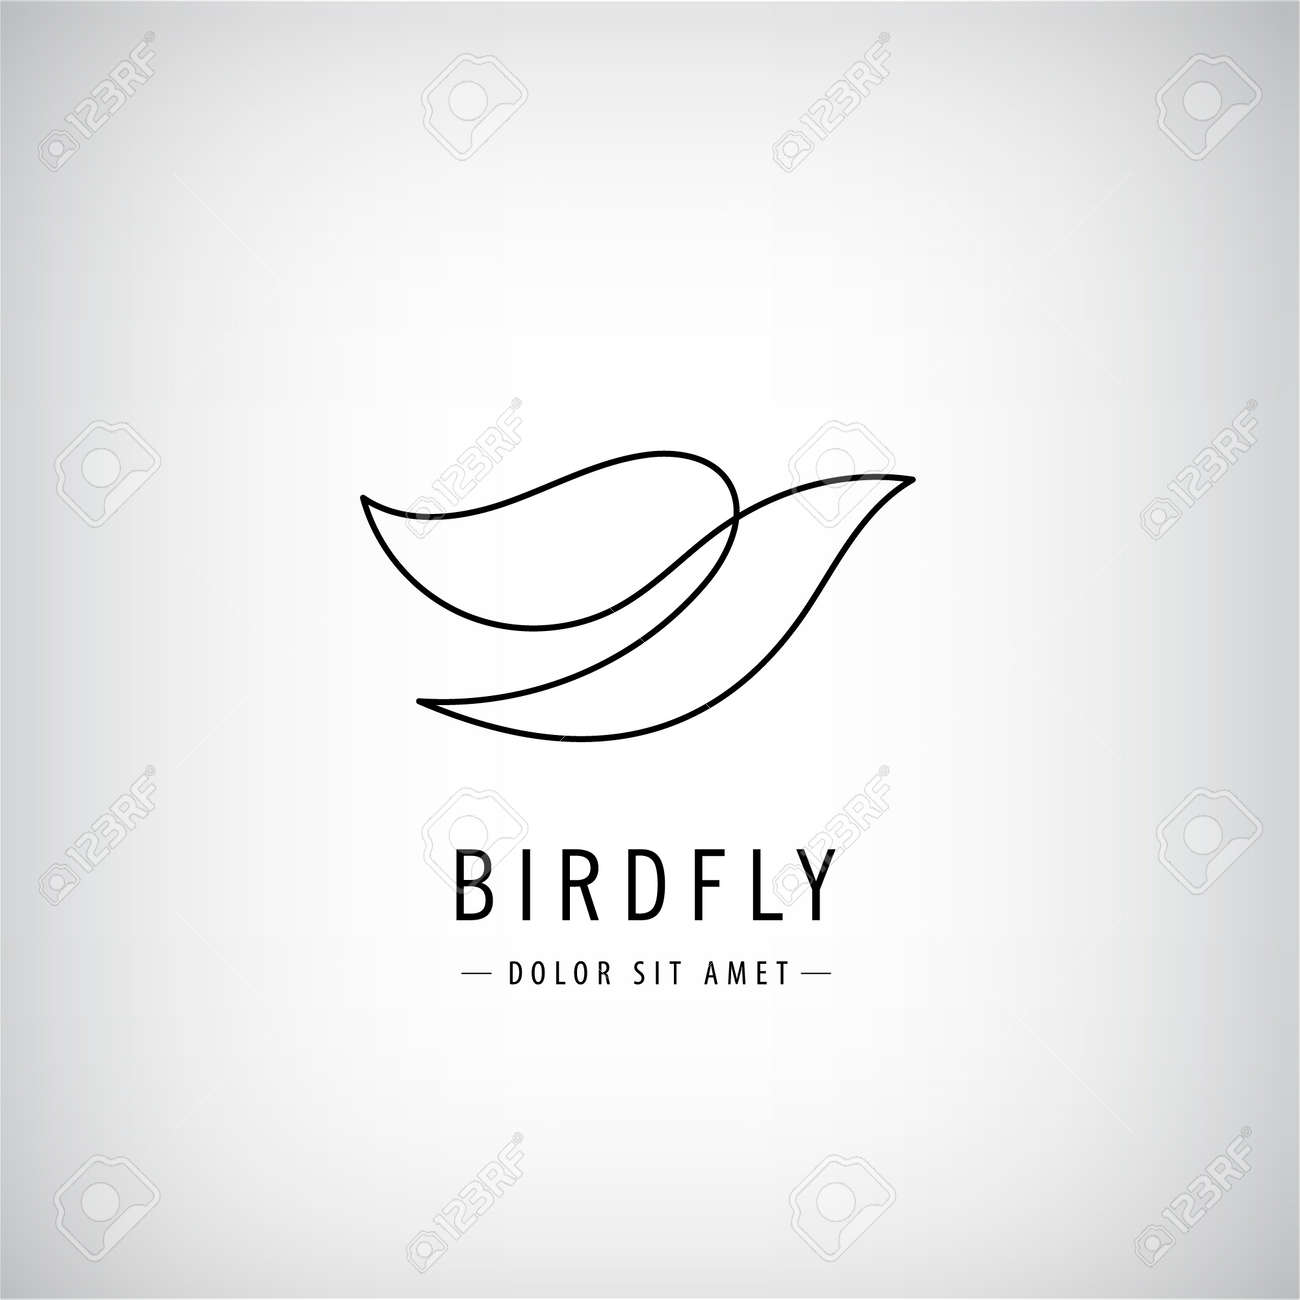 Vector one line bird logo, flying silhouette, continuous monoline concept, abstract icon, sign isolated. Use for print, brand, tatoo, art - 170567490